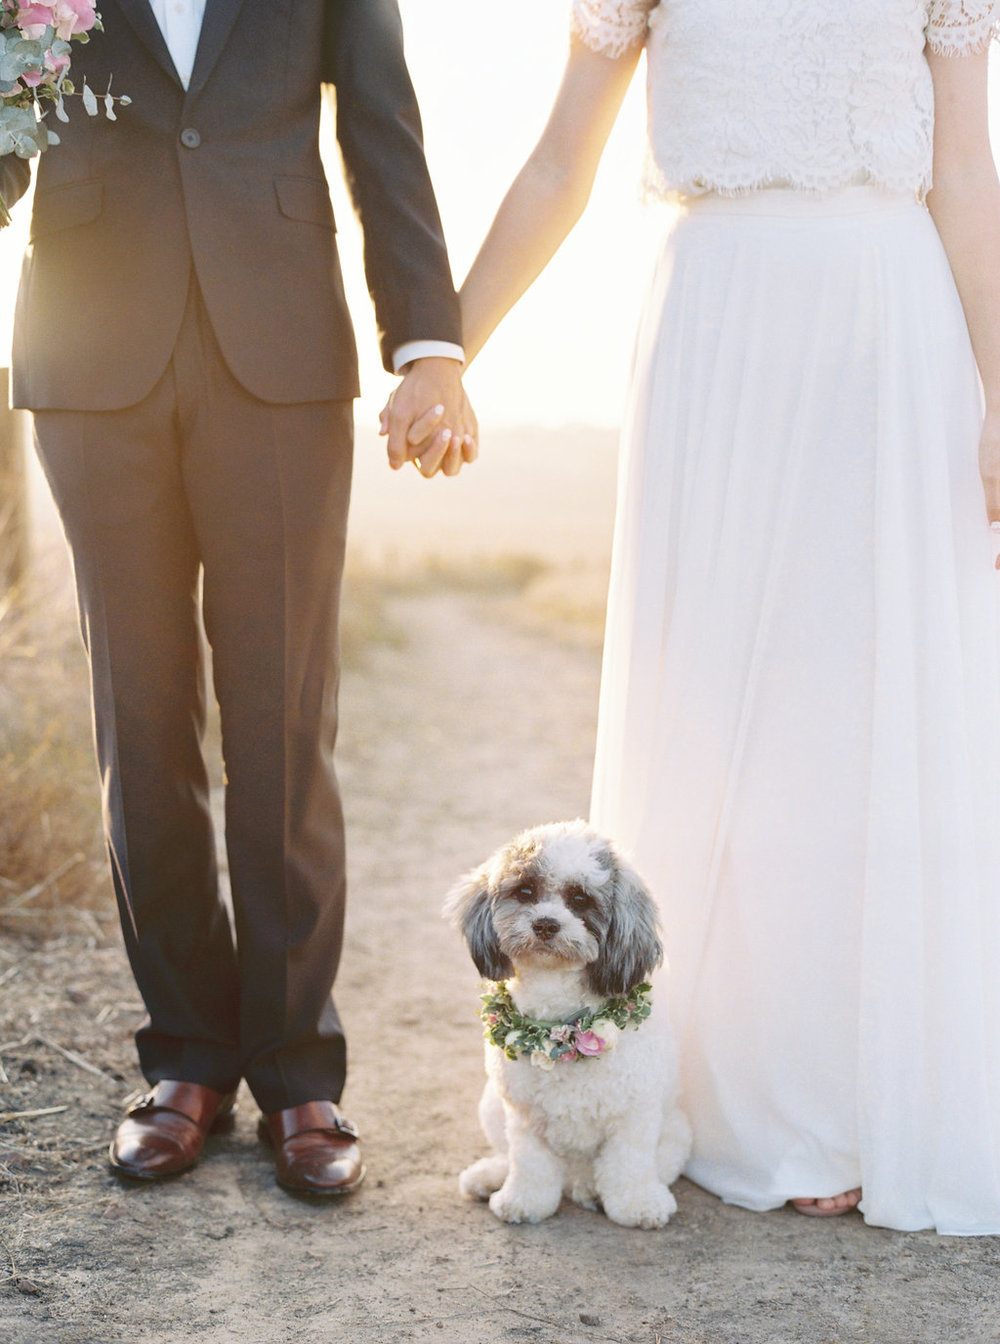 Dreamy golden hour field engagement photo session with dog | Bouquet & floral dog collar by Compass Floral | Wedding Florist in San Diego and Southern California | Meiwen Wang Photography    #gardenromantic       #sandiegowedding     #sandiegoweddingflorist       #orangecountyflorist     #floraldesign       #dreamwedding     #fineartwedding     #fineartflowers     #fineartcuration     #weddingdetails     #weddinginspiratio   n #engaged #engagementphotos #engagementphotooutfitinspiration #fieldphotos #dreamyphotos #goldenhour  #weddingdog  #dogsinweddings  #flowerdog #floraldogcollar #dogcollarflower #dogcollar #puppydog #doglovers #dogsandflowers #puppyeyes #puppycuddles #shichons #bichon #shihtzu  #engagementphotobouquet